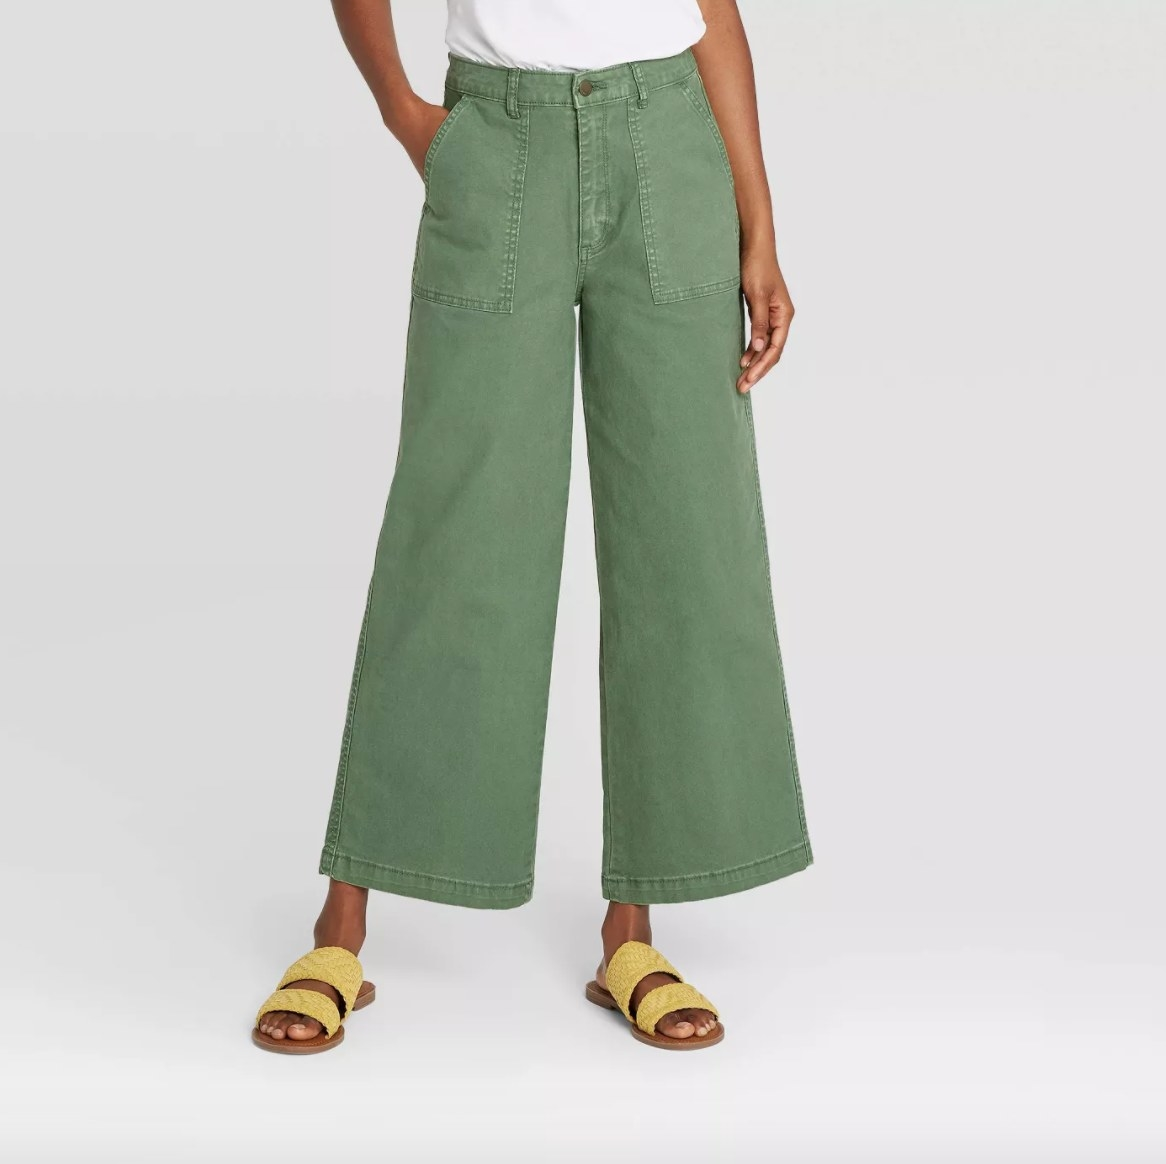 The jeans in the color green